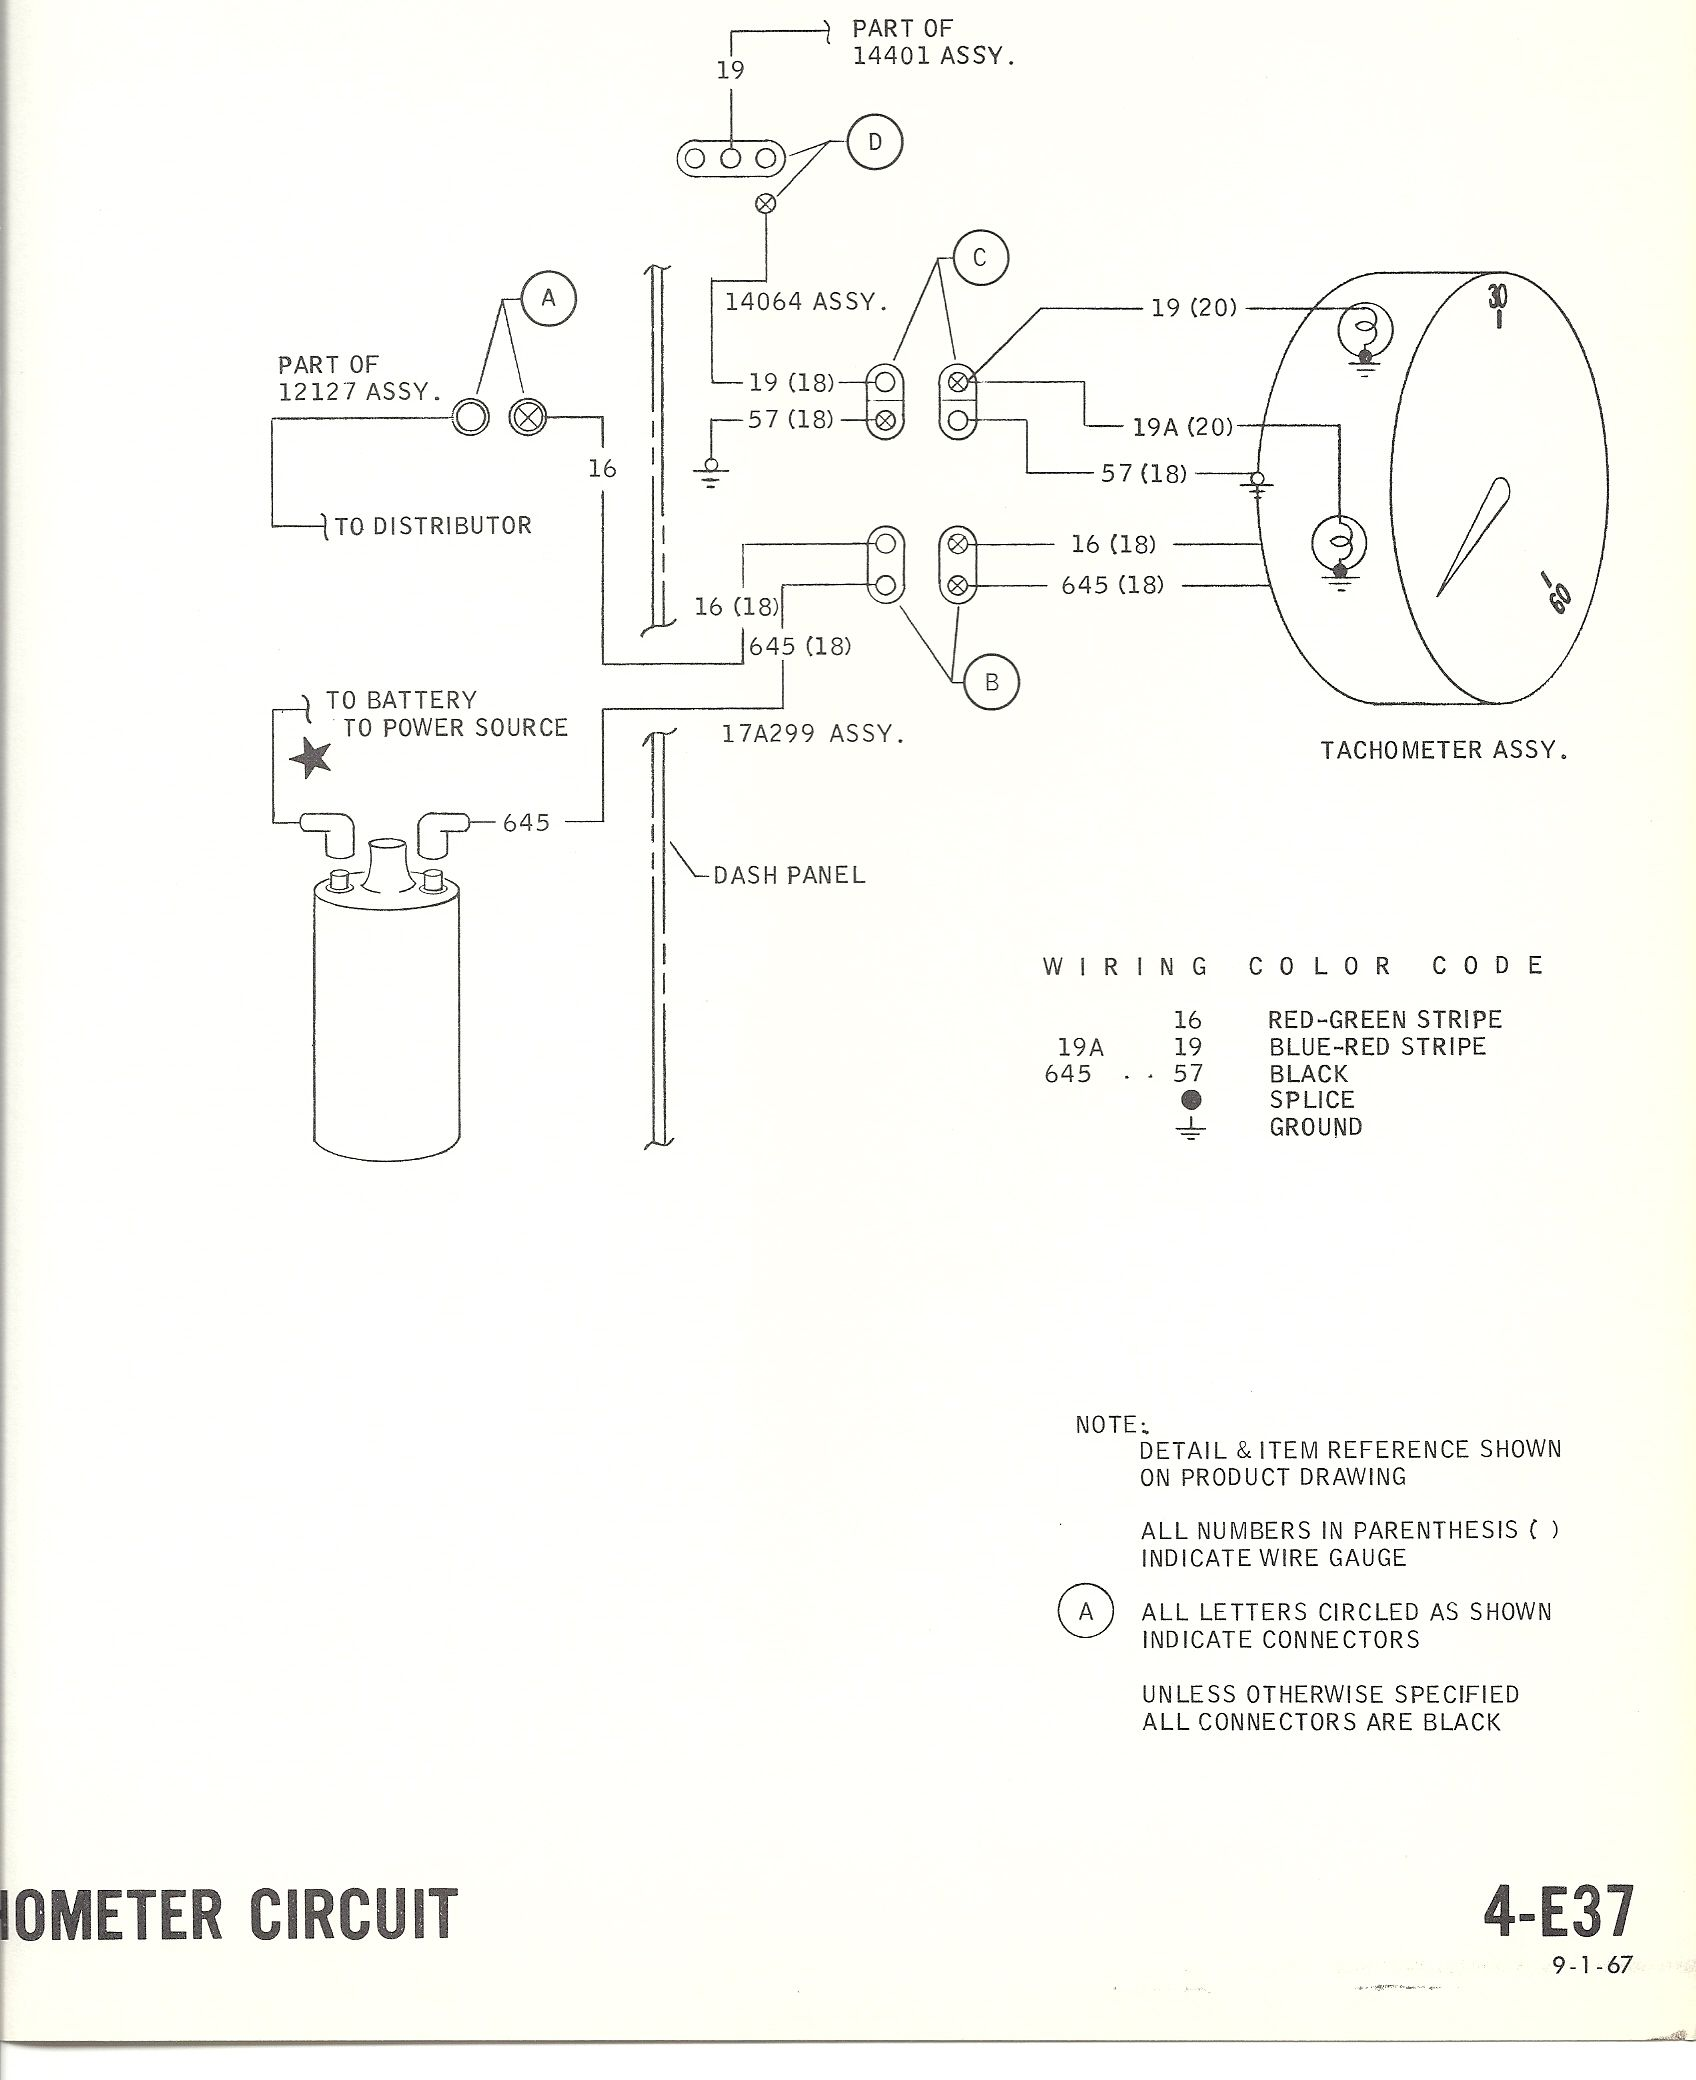 2b2f8e488a4c6a6b870c00f5af30de6c 1967 mustang wiring to tachometer 1968 mustang wiring 1967 mustang ignition wiring diagram at gsmx.co